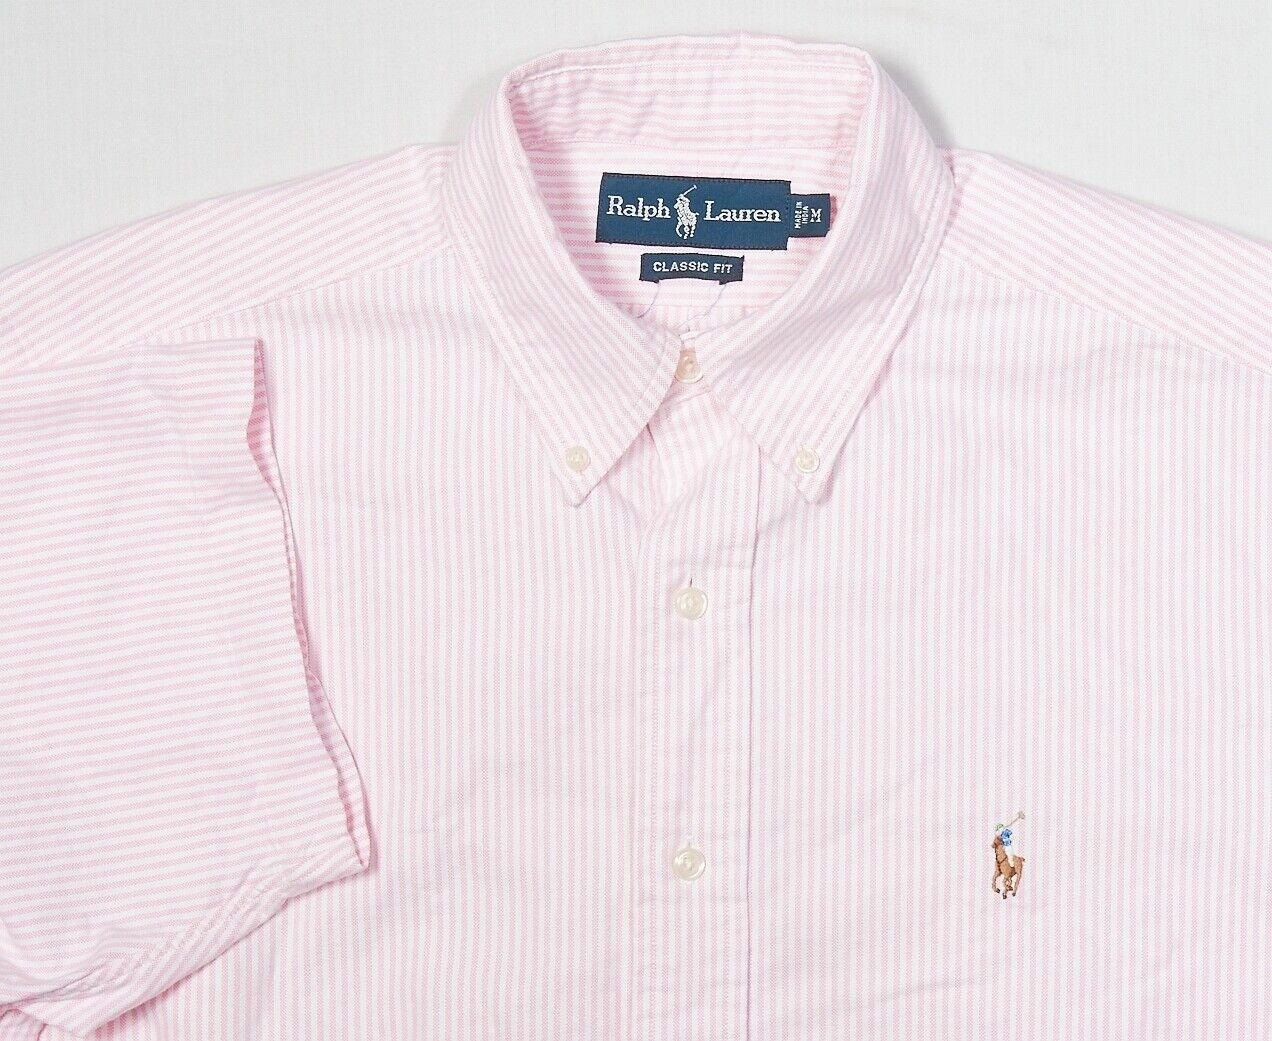 4cdf49583 Mens POLO LAUREN Button-Down Shirt M Classic Pink Stripe SS University  RALPH nofbae1161-Casual Button-Down Shirts